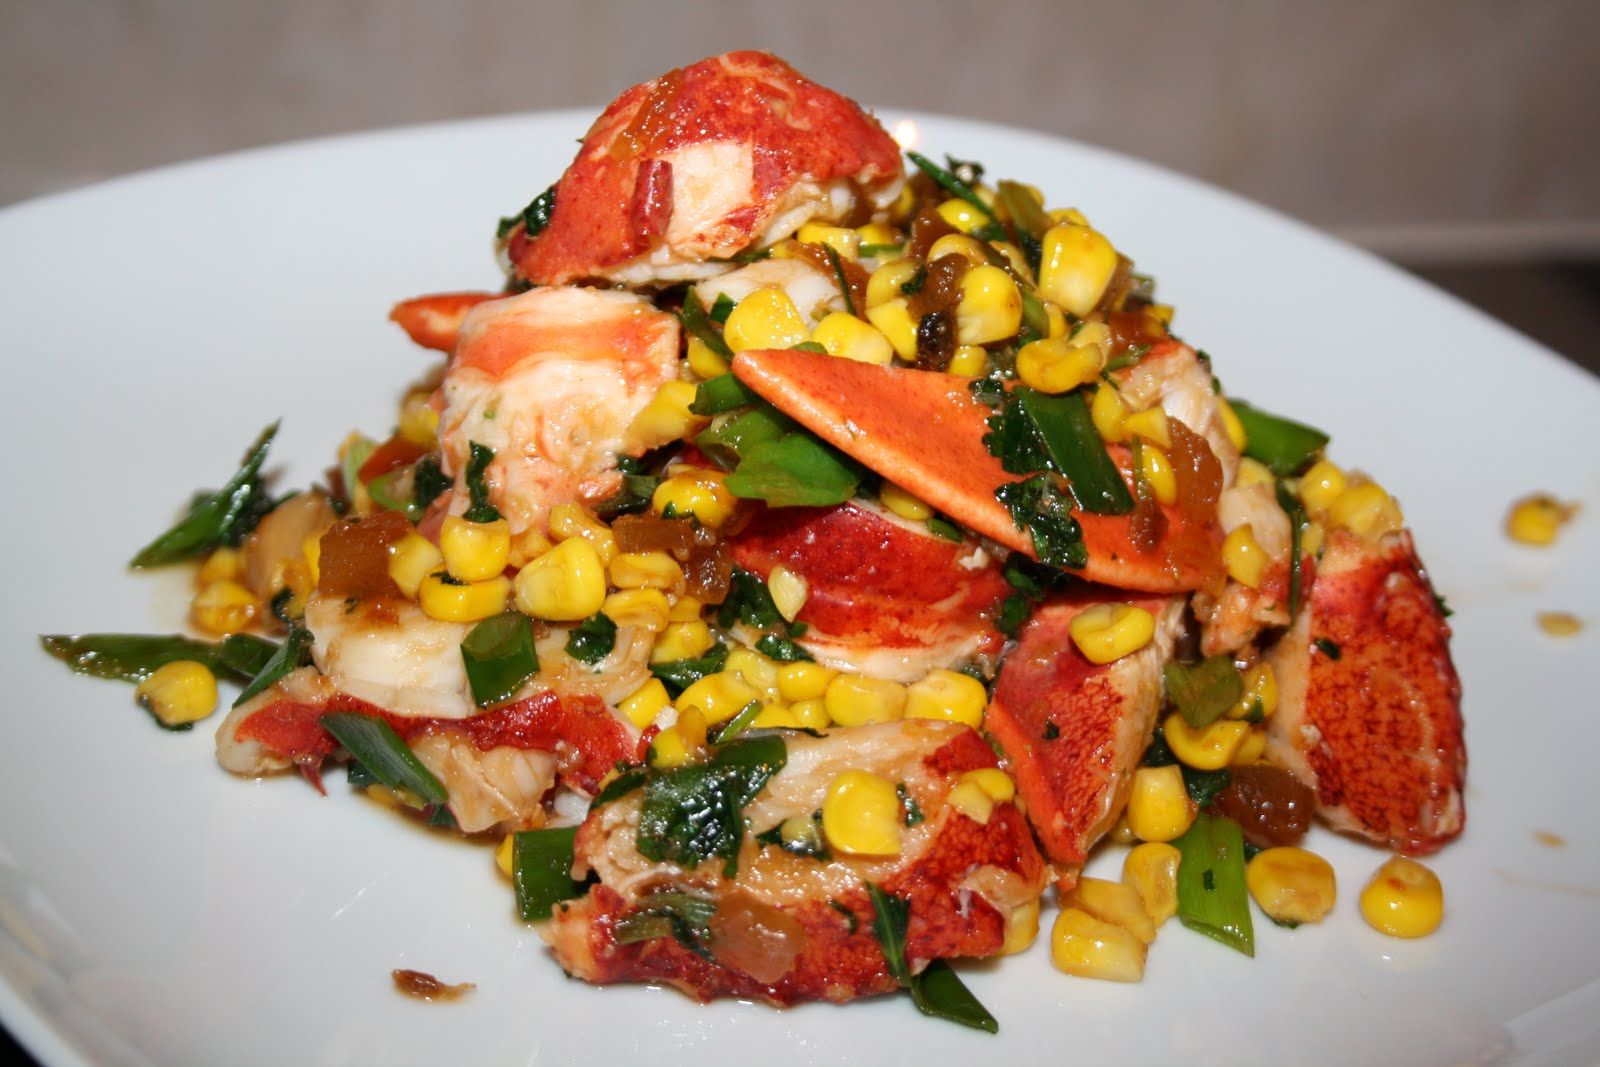 Sabrina's Passions: RECIPE: Lobster Stir Fry with Sweetcorn and Spicy Papaya